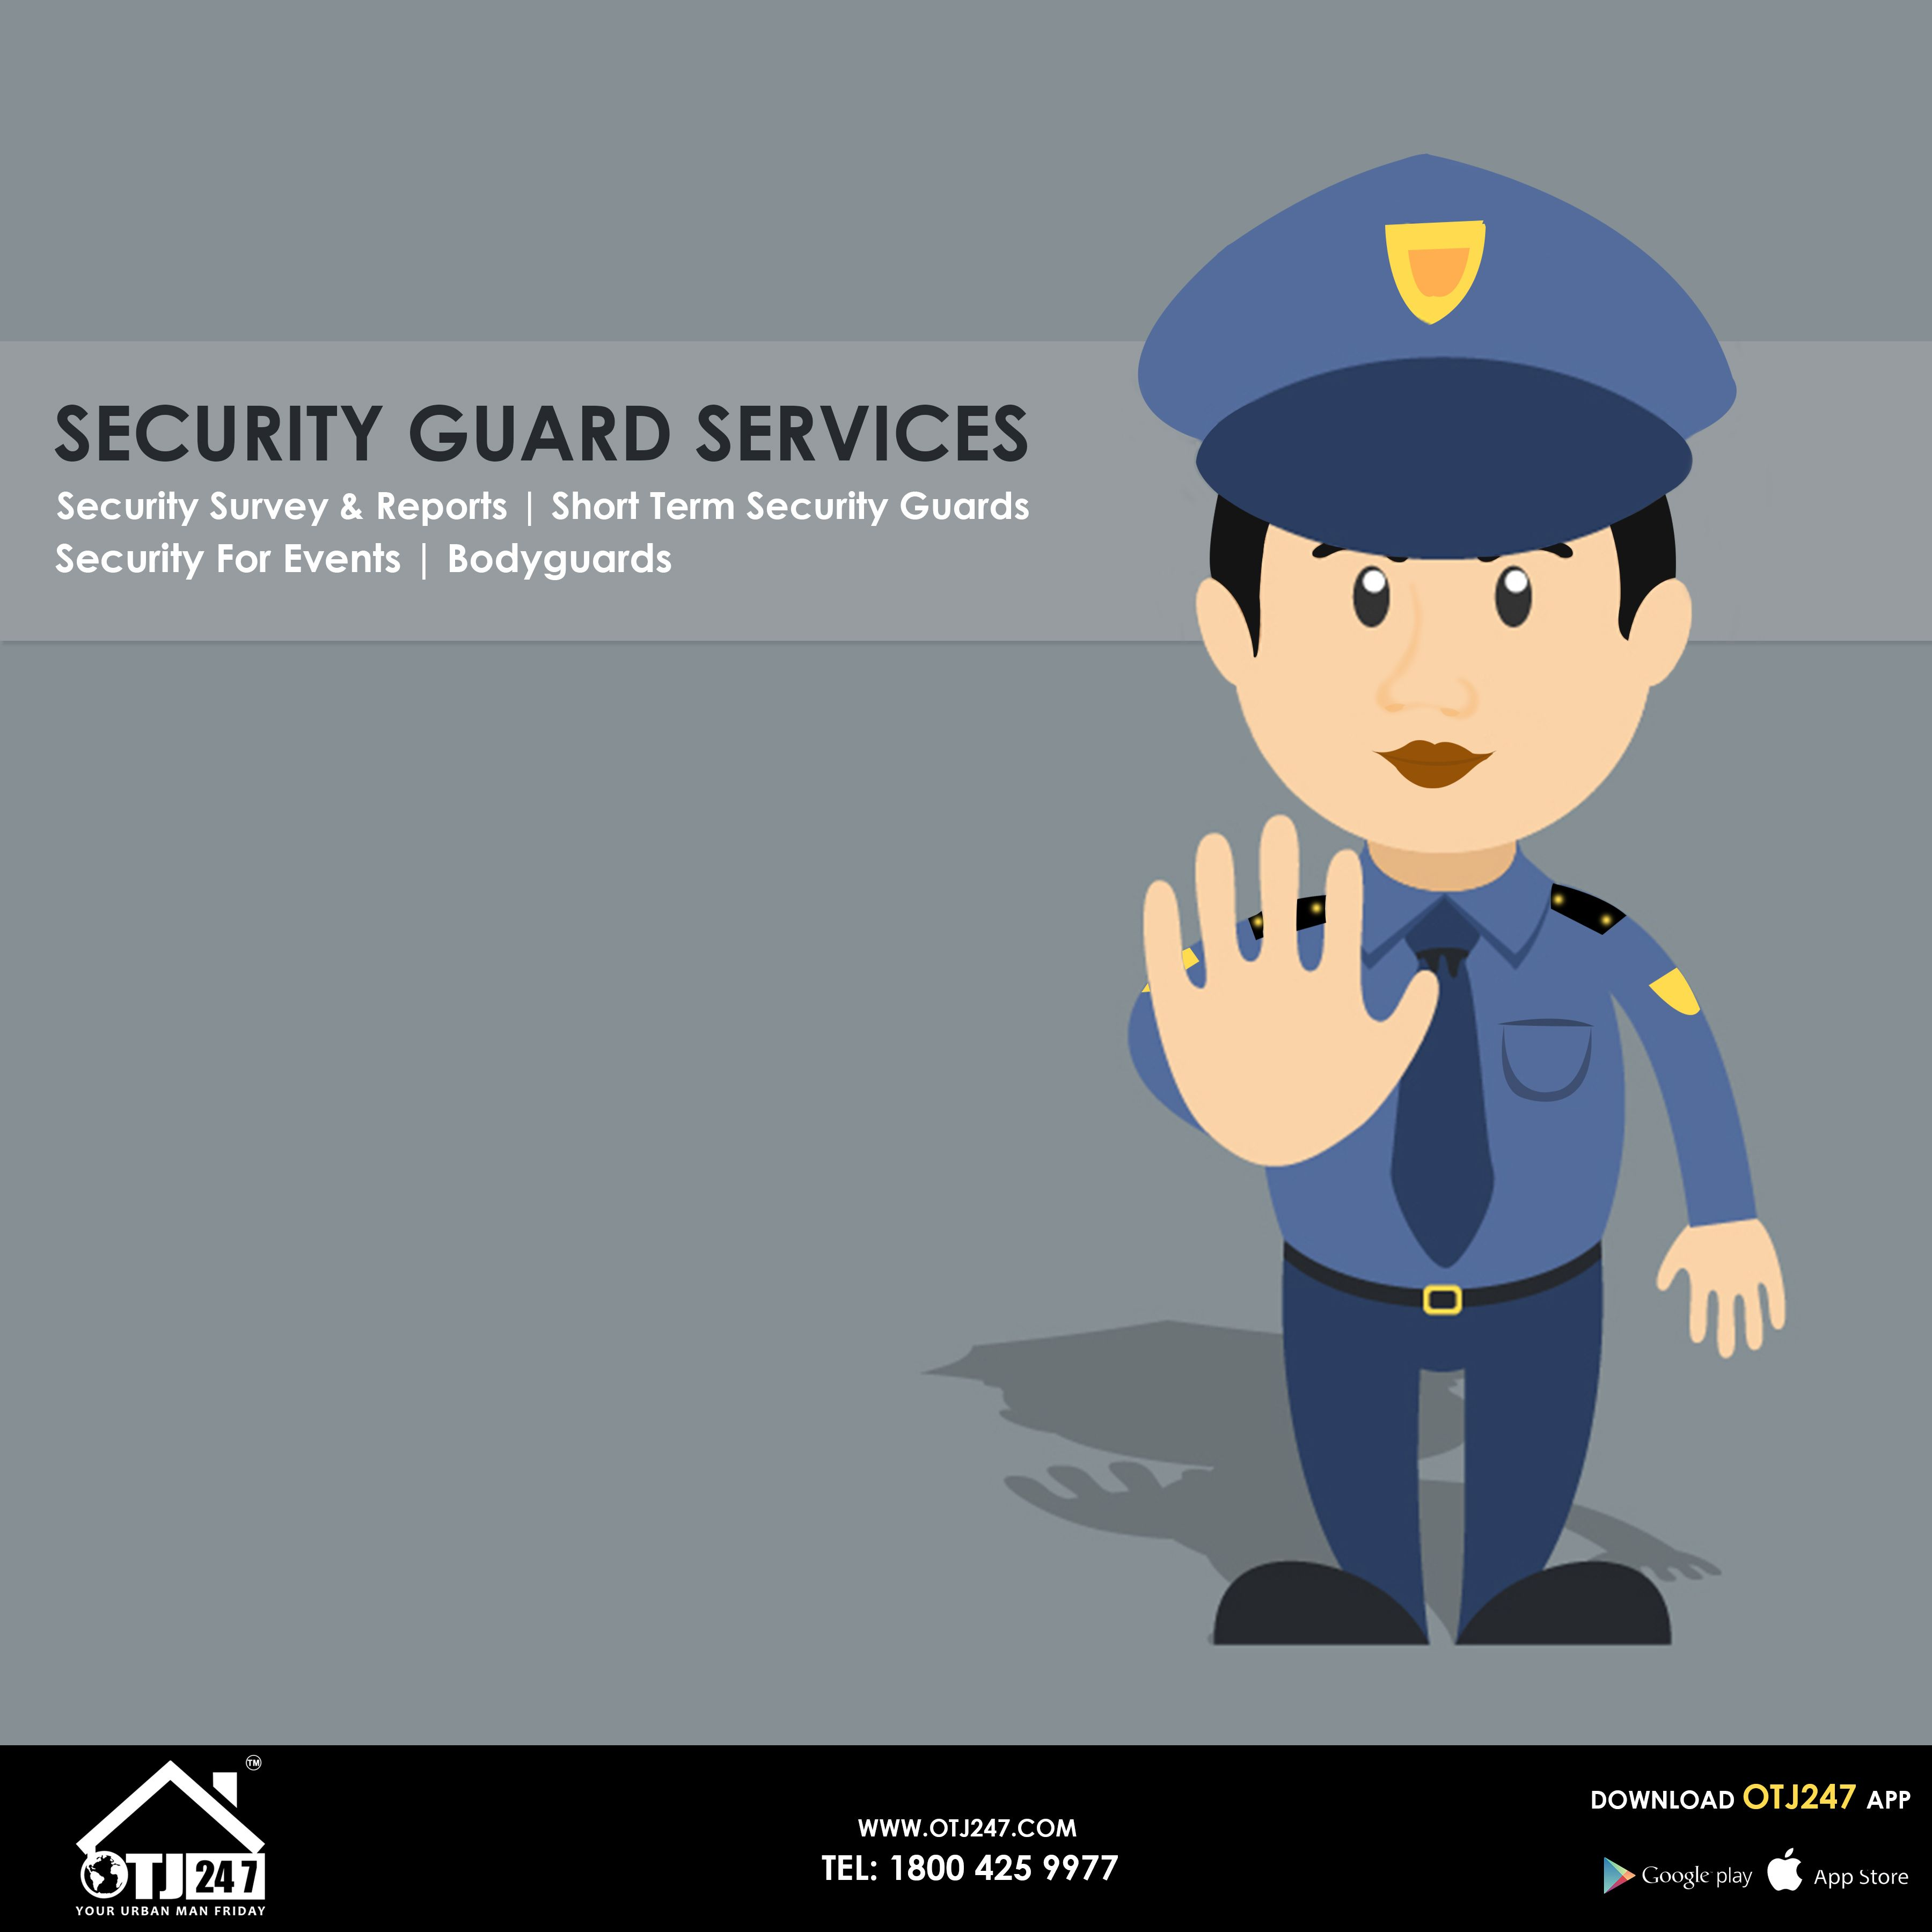 Pin by OTJ247 on Handyman | Security guard services, Security guard